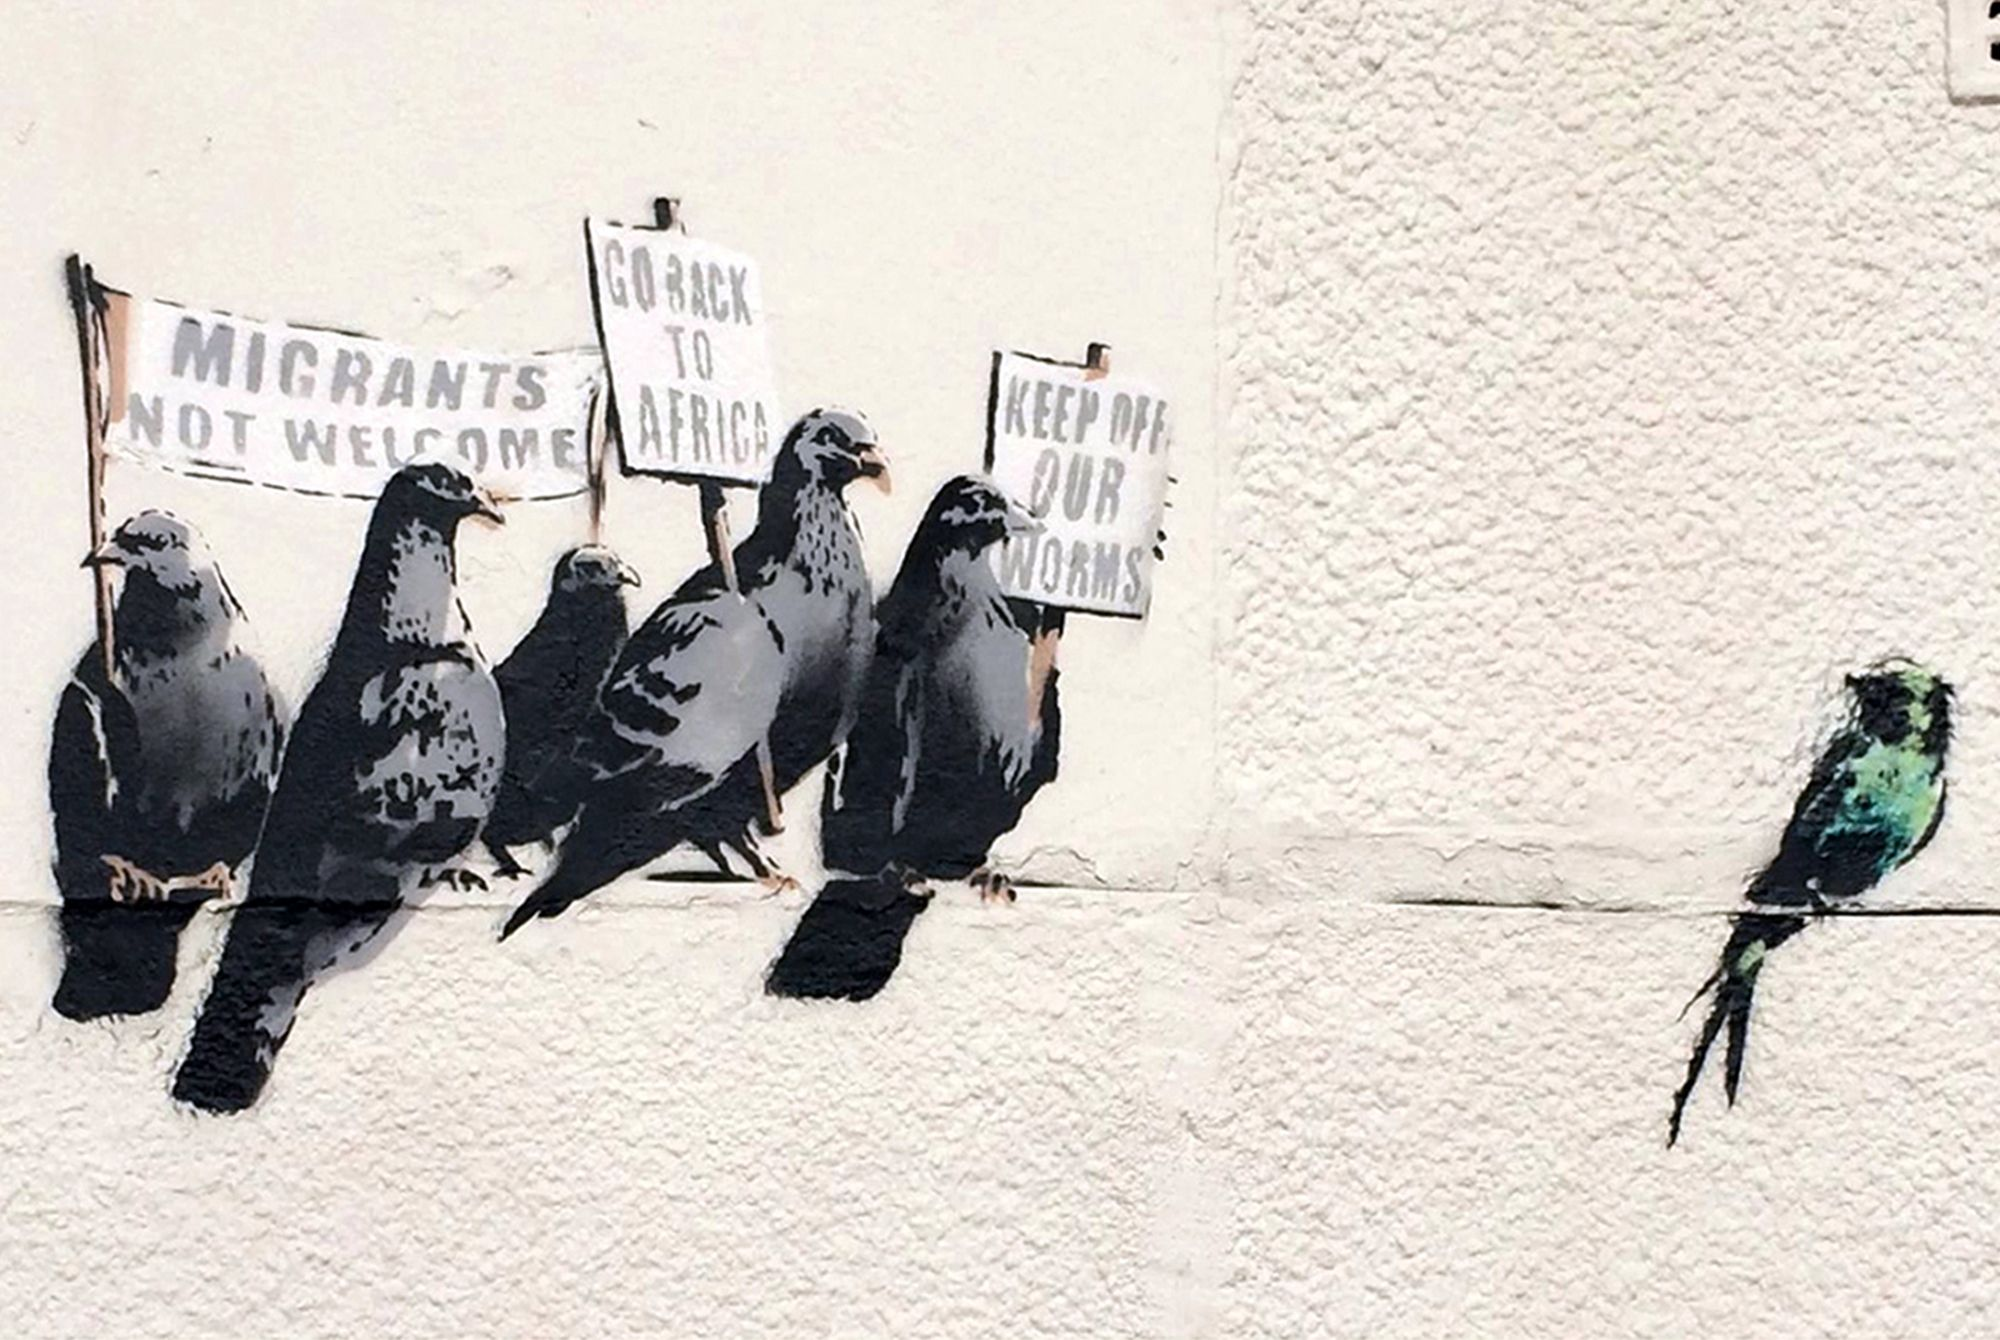 Museums won't even take Banksy's art for free | New York Post